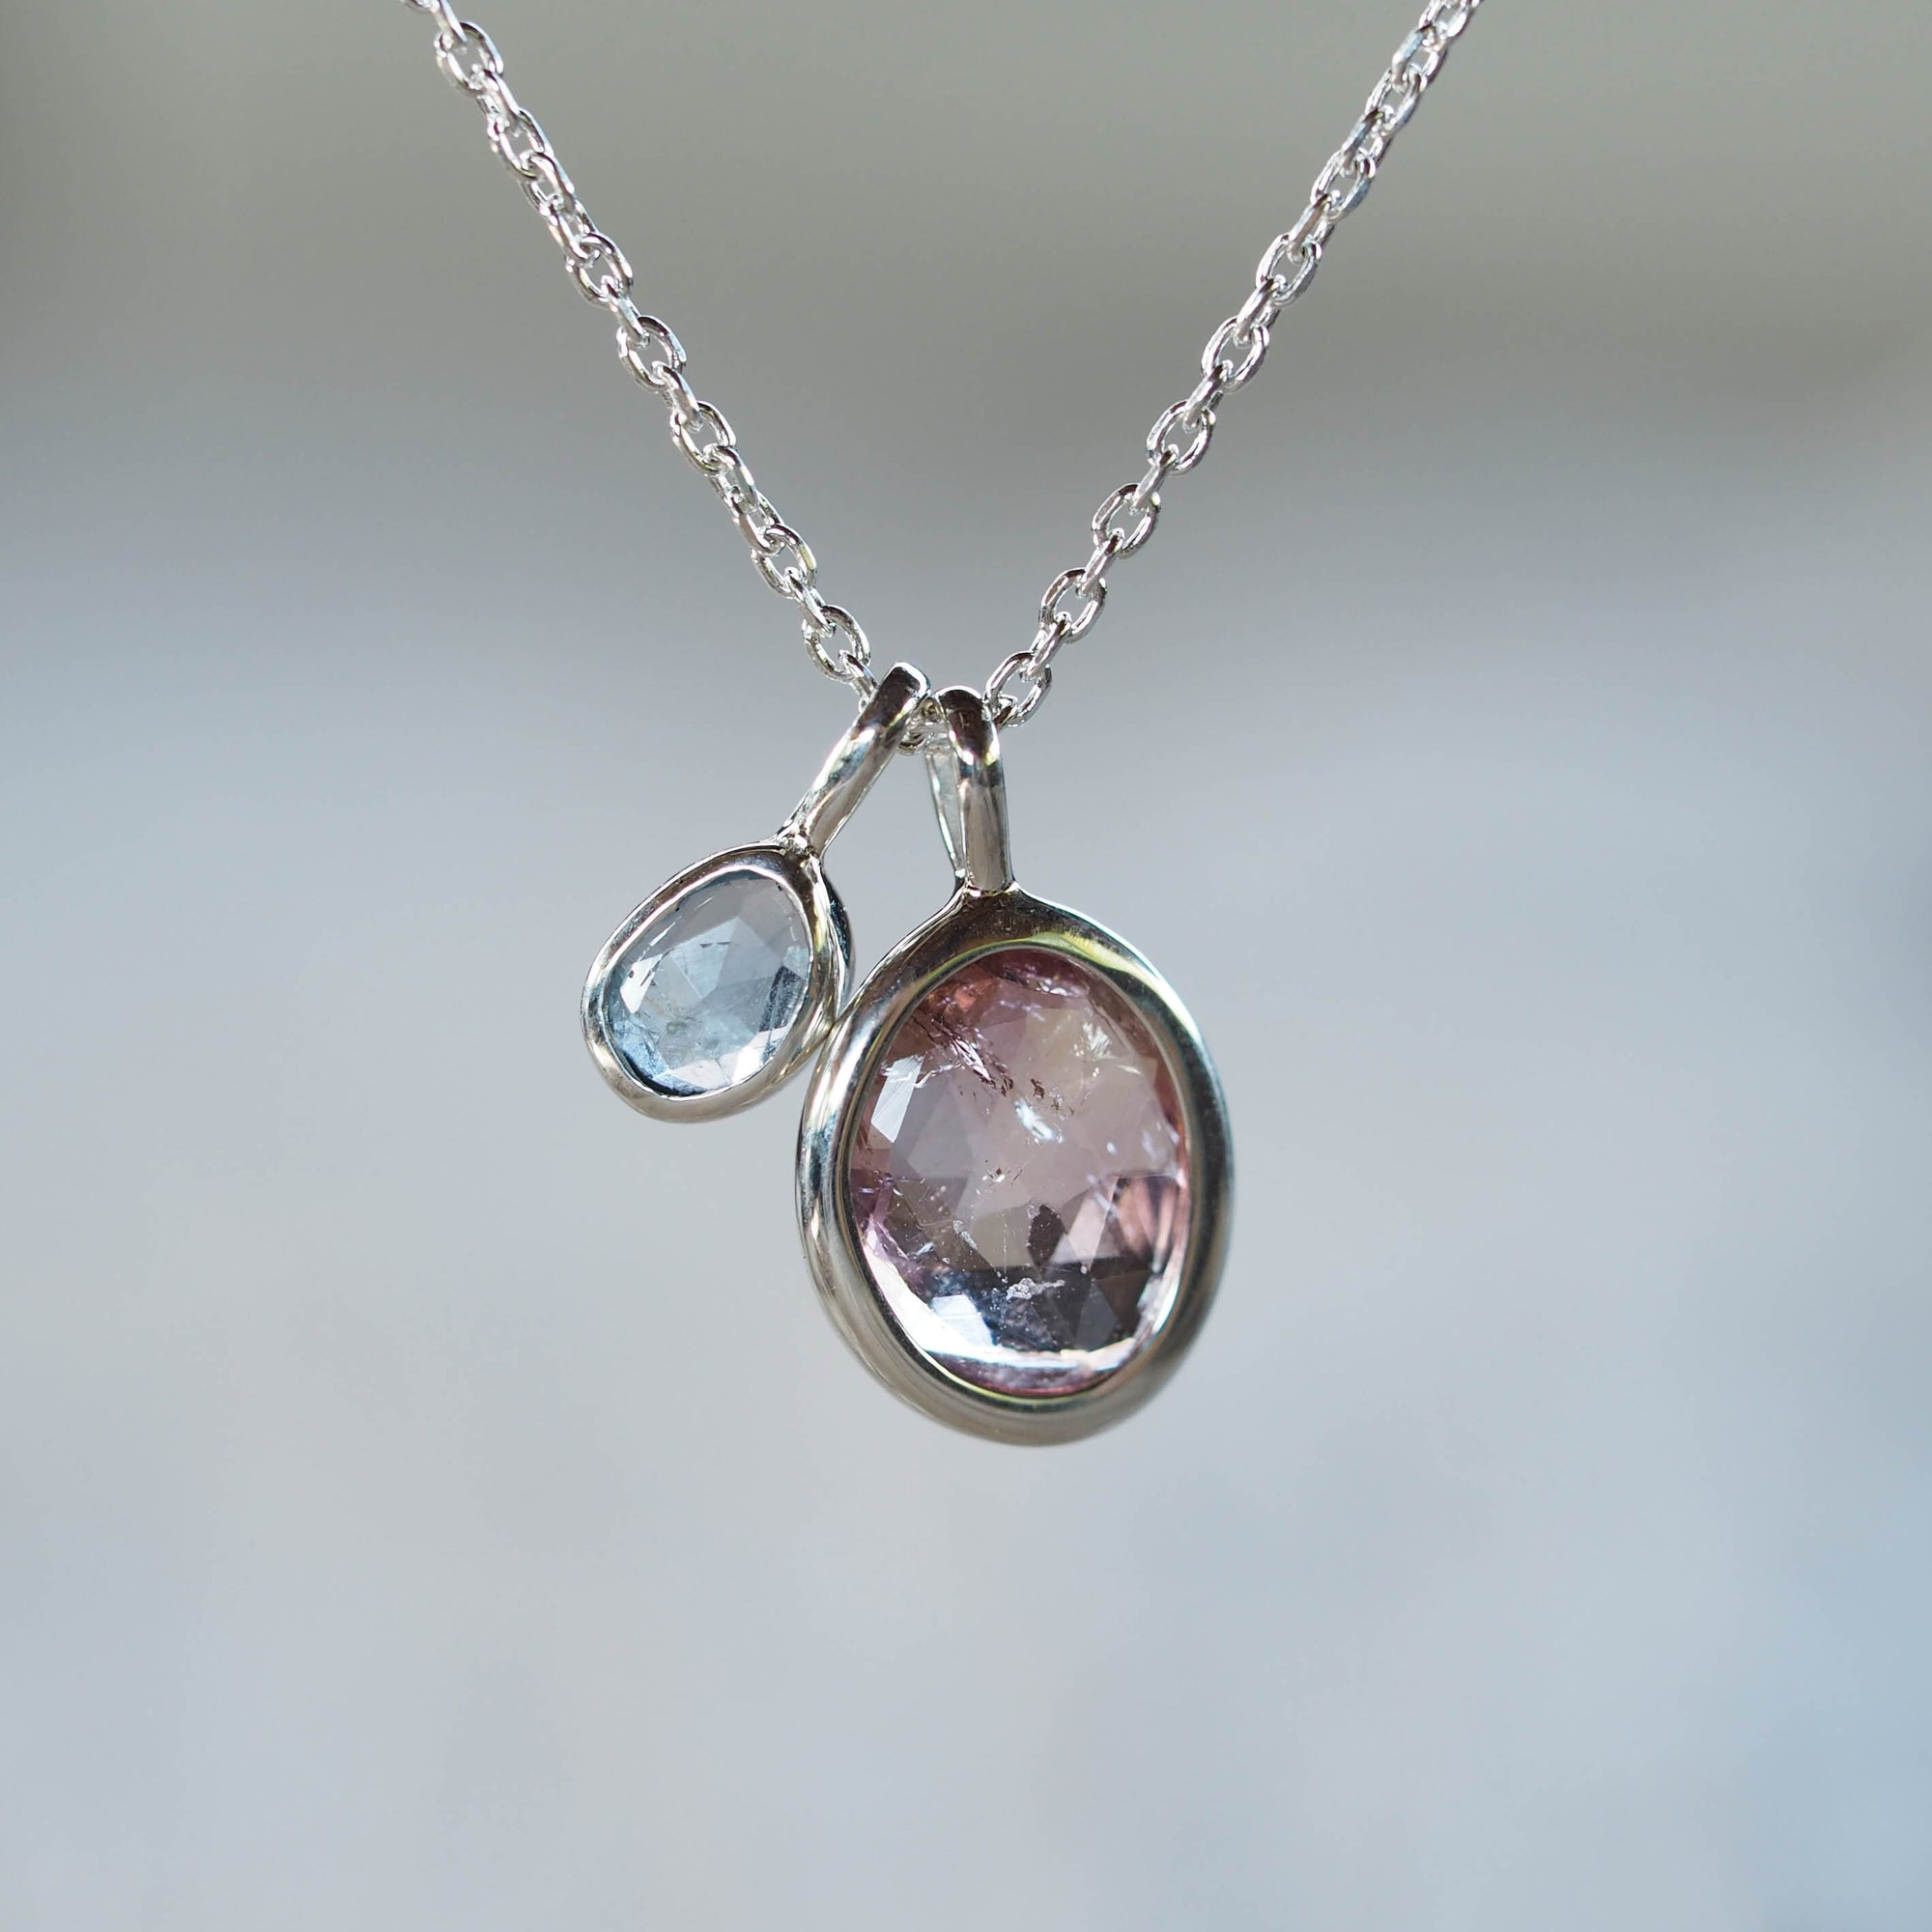 AA Rose Cut Tourmaline and Ceylon Sapphire Necklace - Gardens of the Sun Jewelry